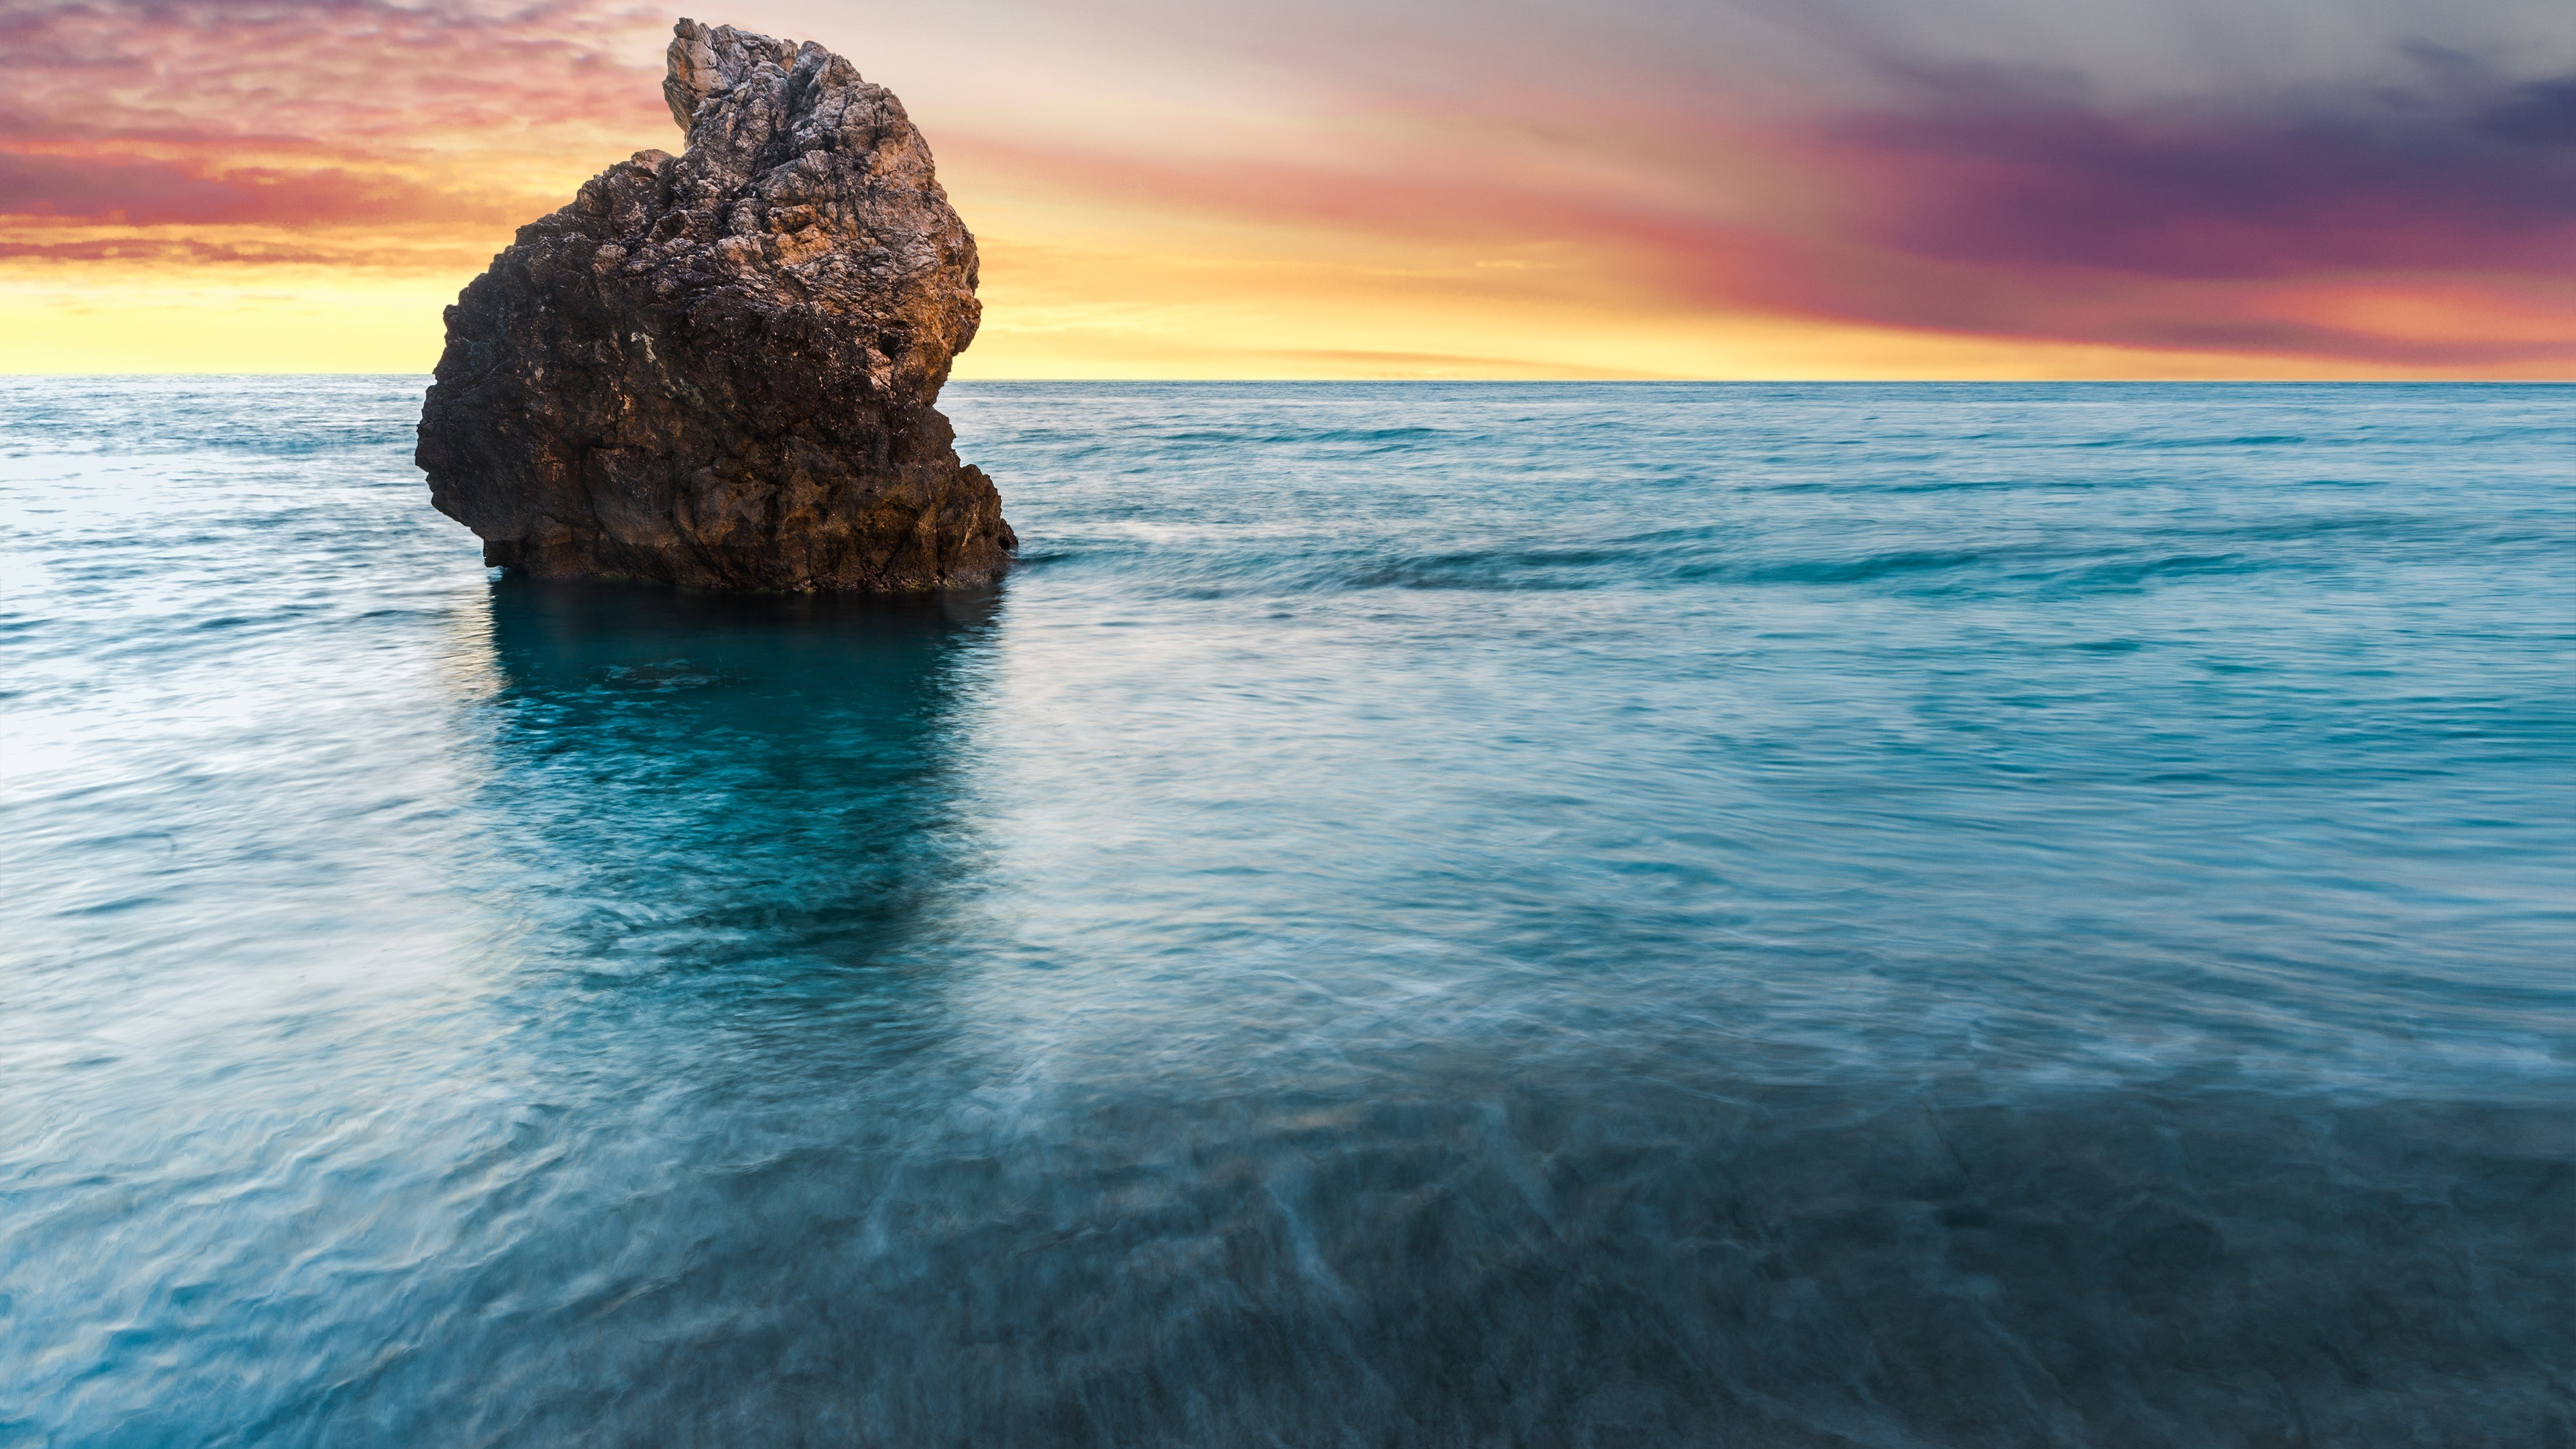 Beach Rock Lefkada Greece 4K Ultra HD Desktop Wallpaper Uploaded by  DesktopWalls